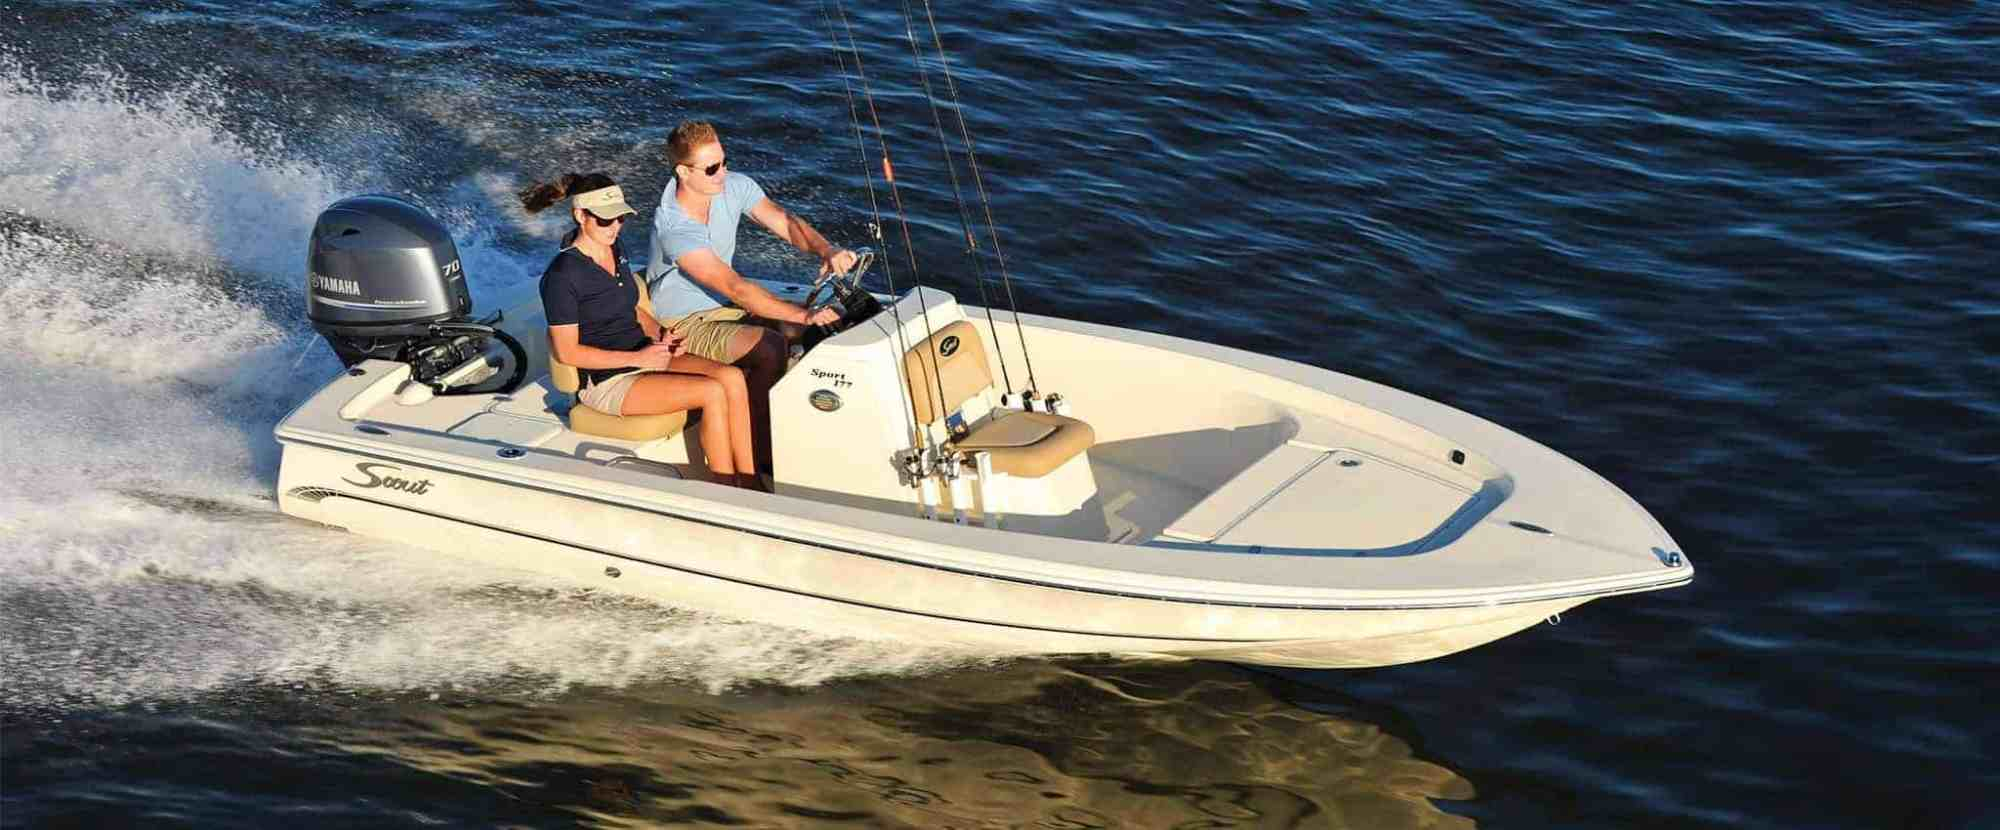 hight resolution of scout 177 sport center console flats fishing boat 1989 skeeter boat wiring diagram electrical wiring diagram scout boats